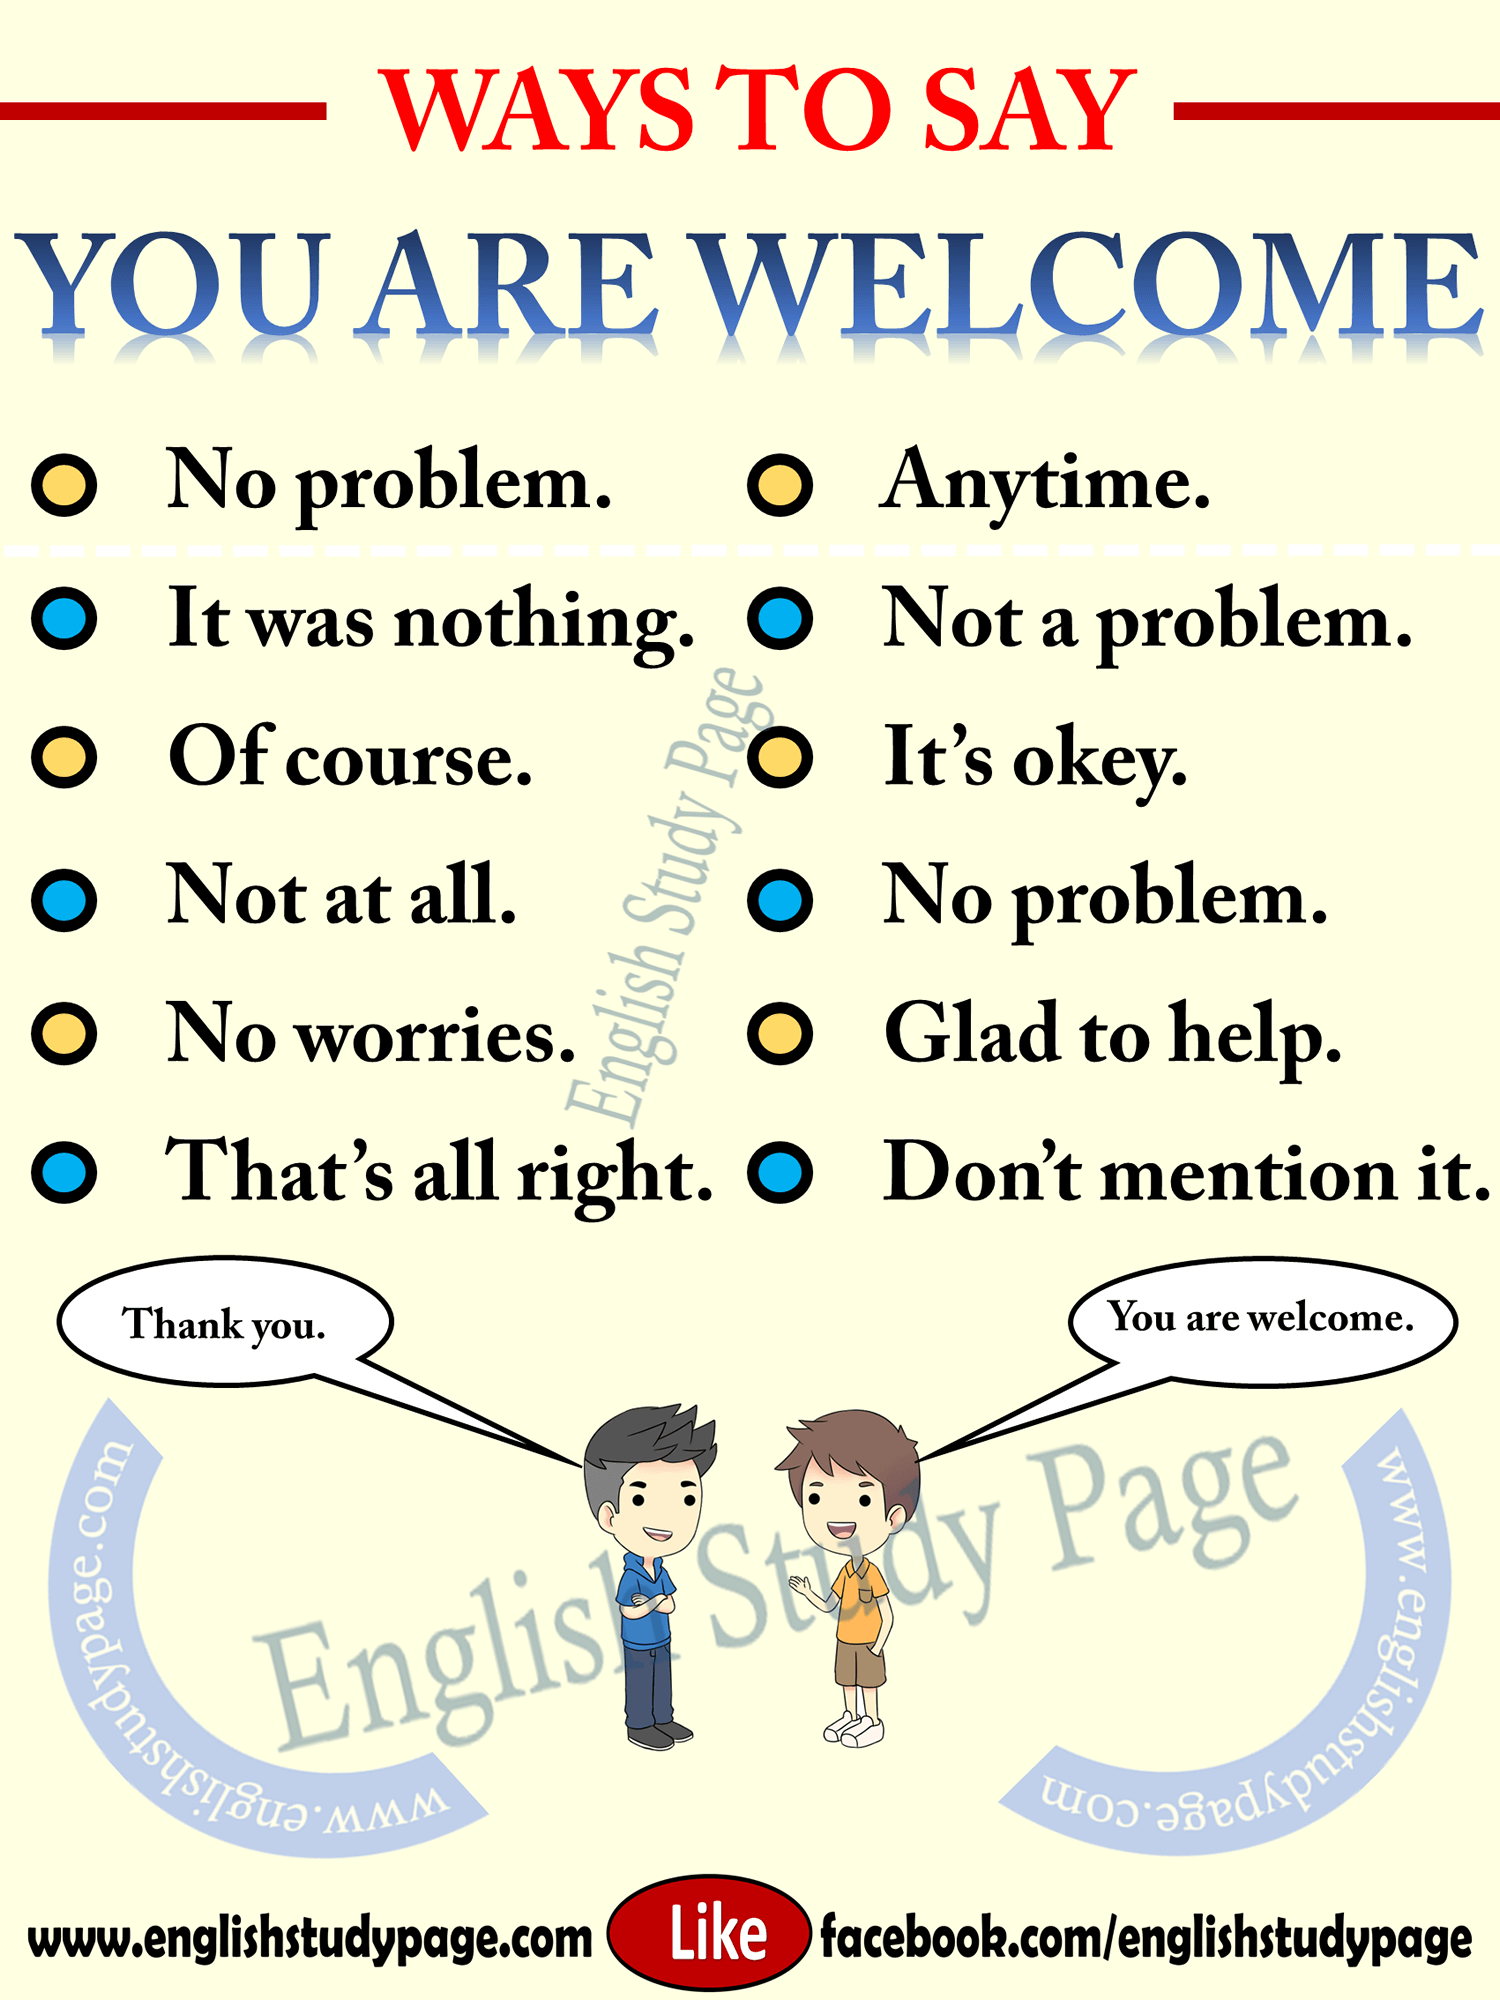 how to say thank you and your welcome in swedish